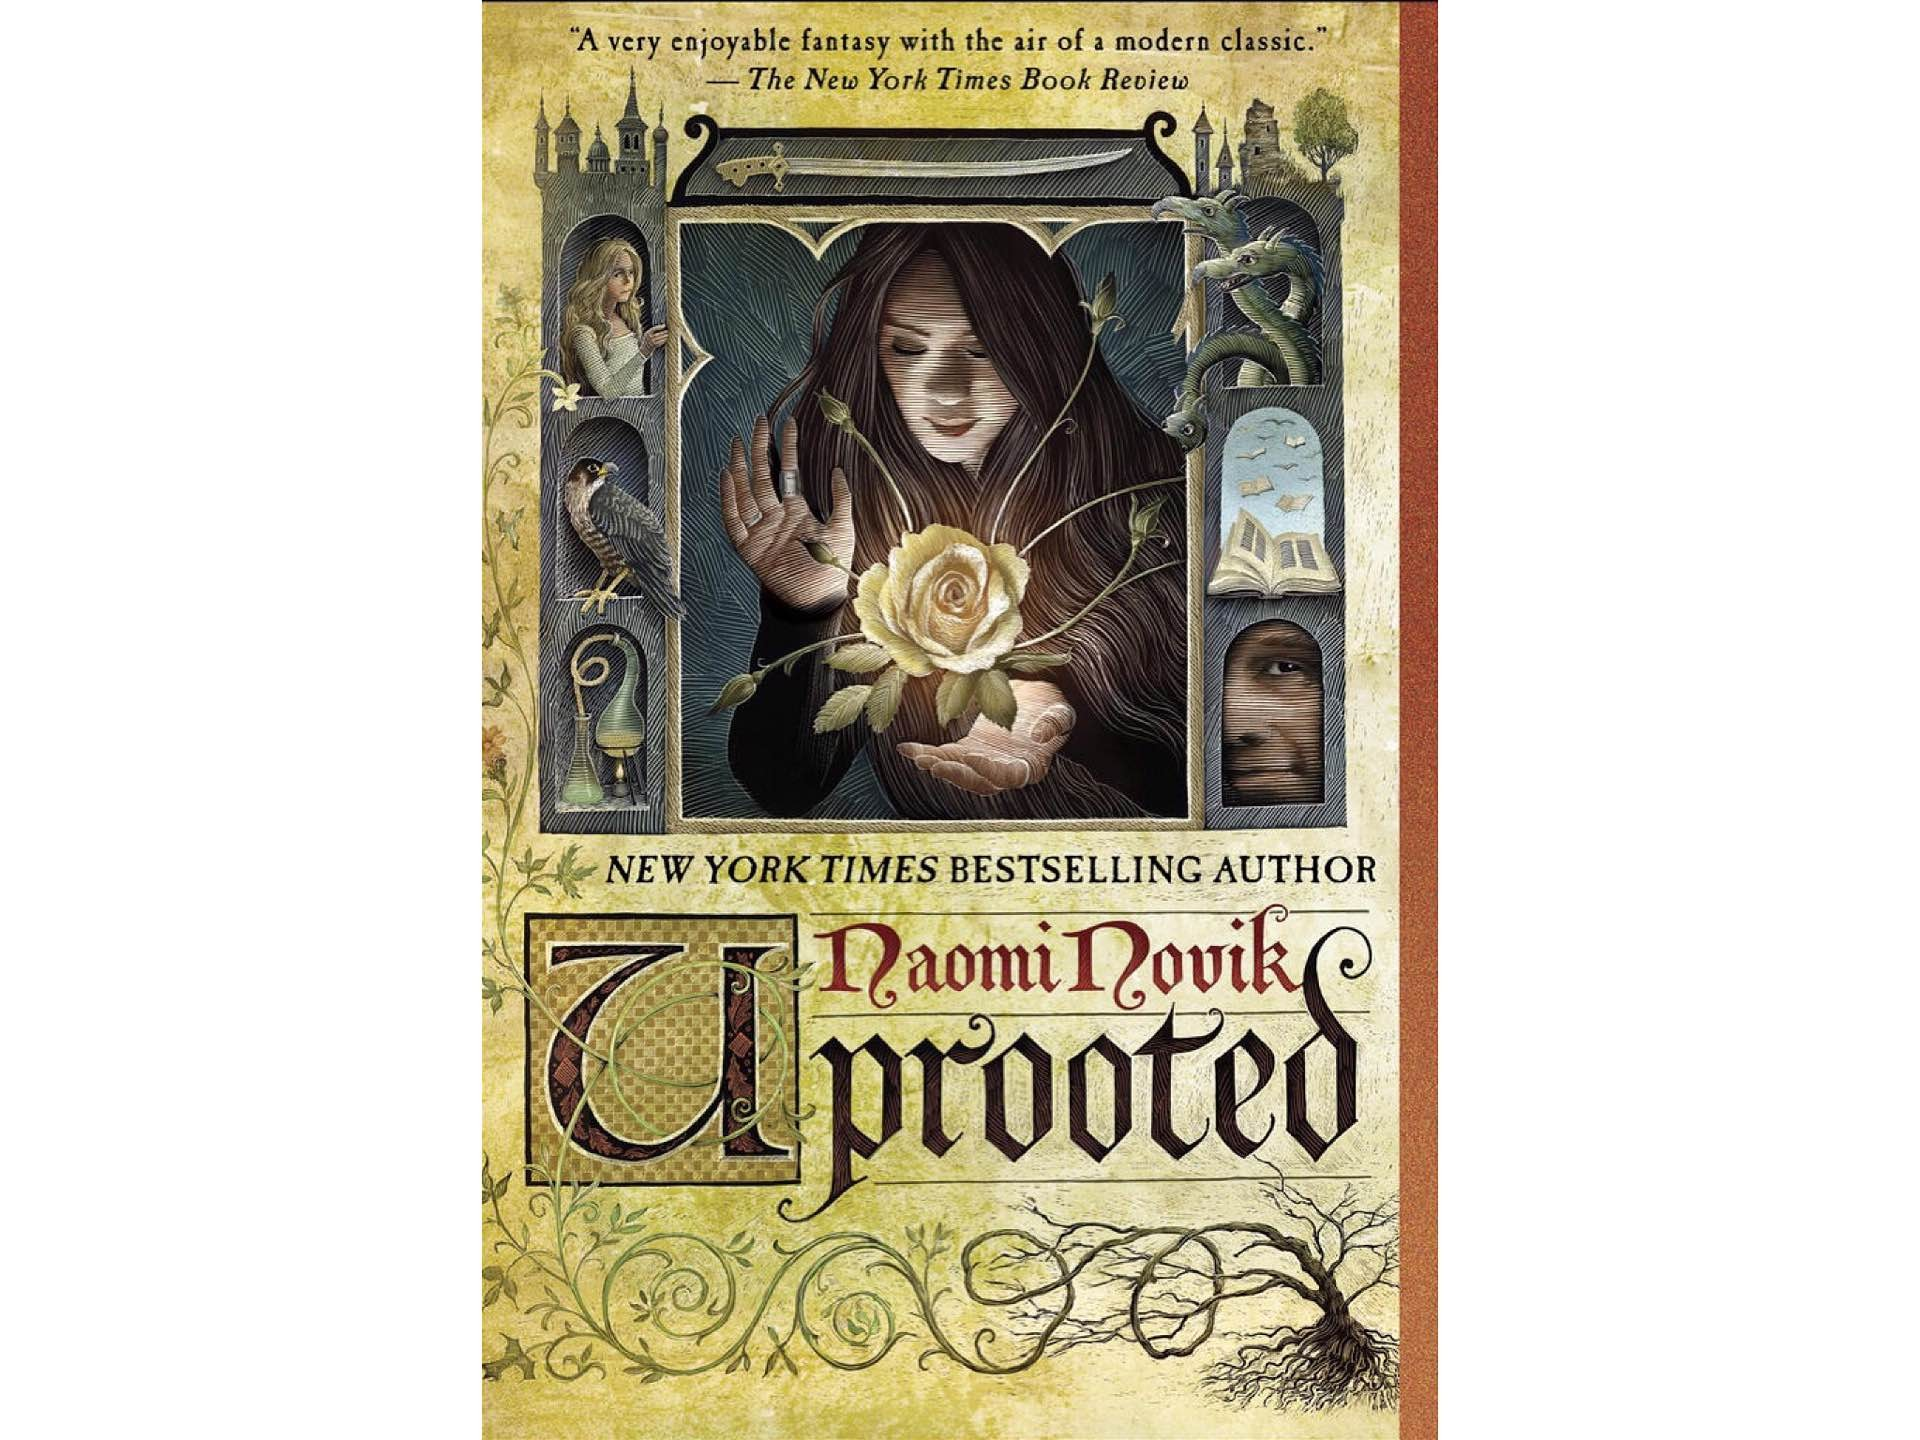 Uprooted by Naomi Novik. ($10 paperback)